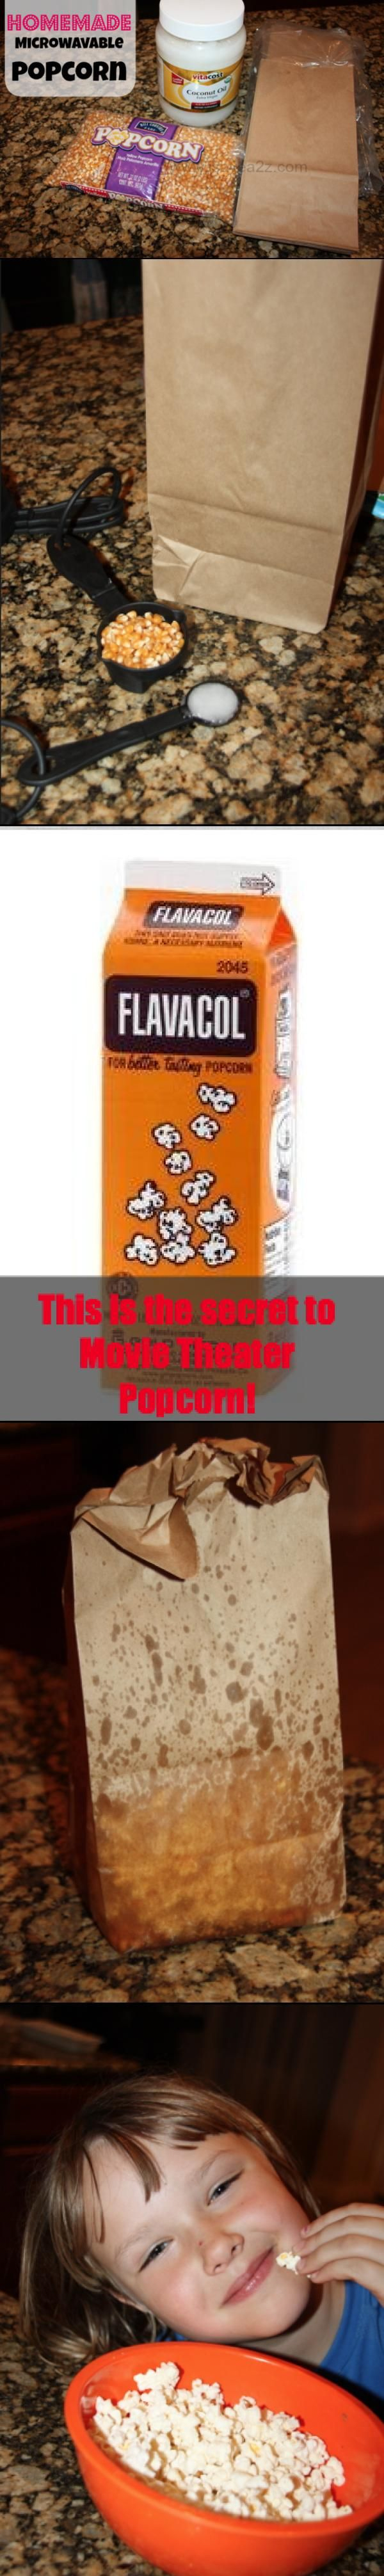 Here's the secret to make homemade microwavable popcorn that taste just like the kind you get at the movies!!!